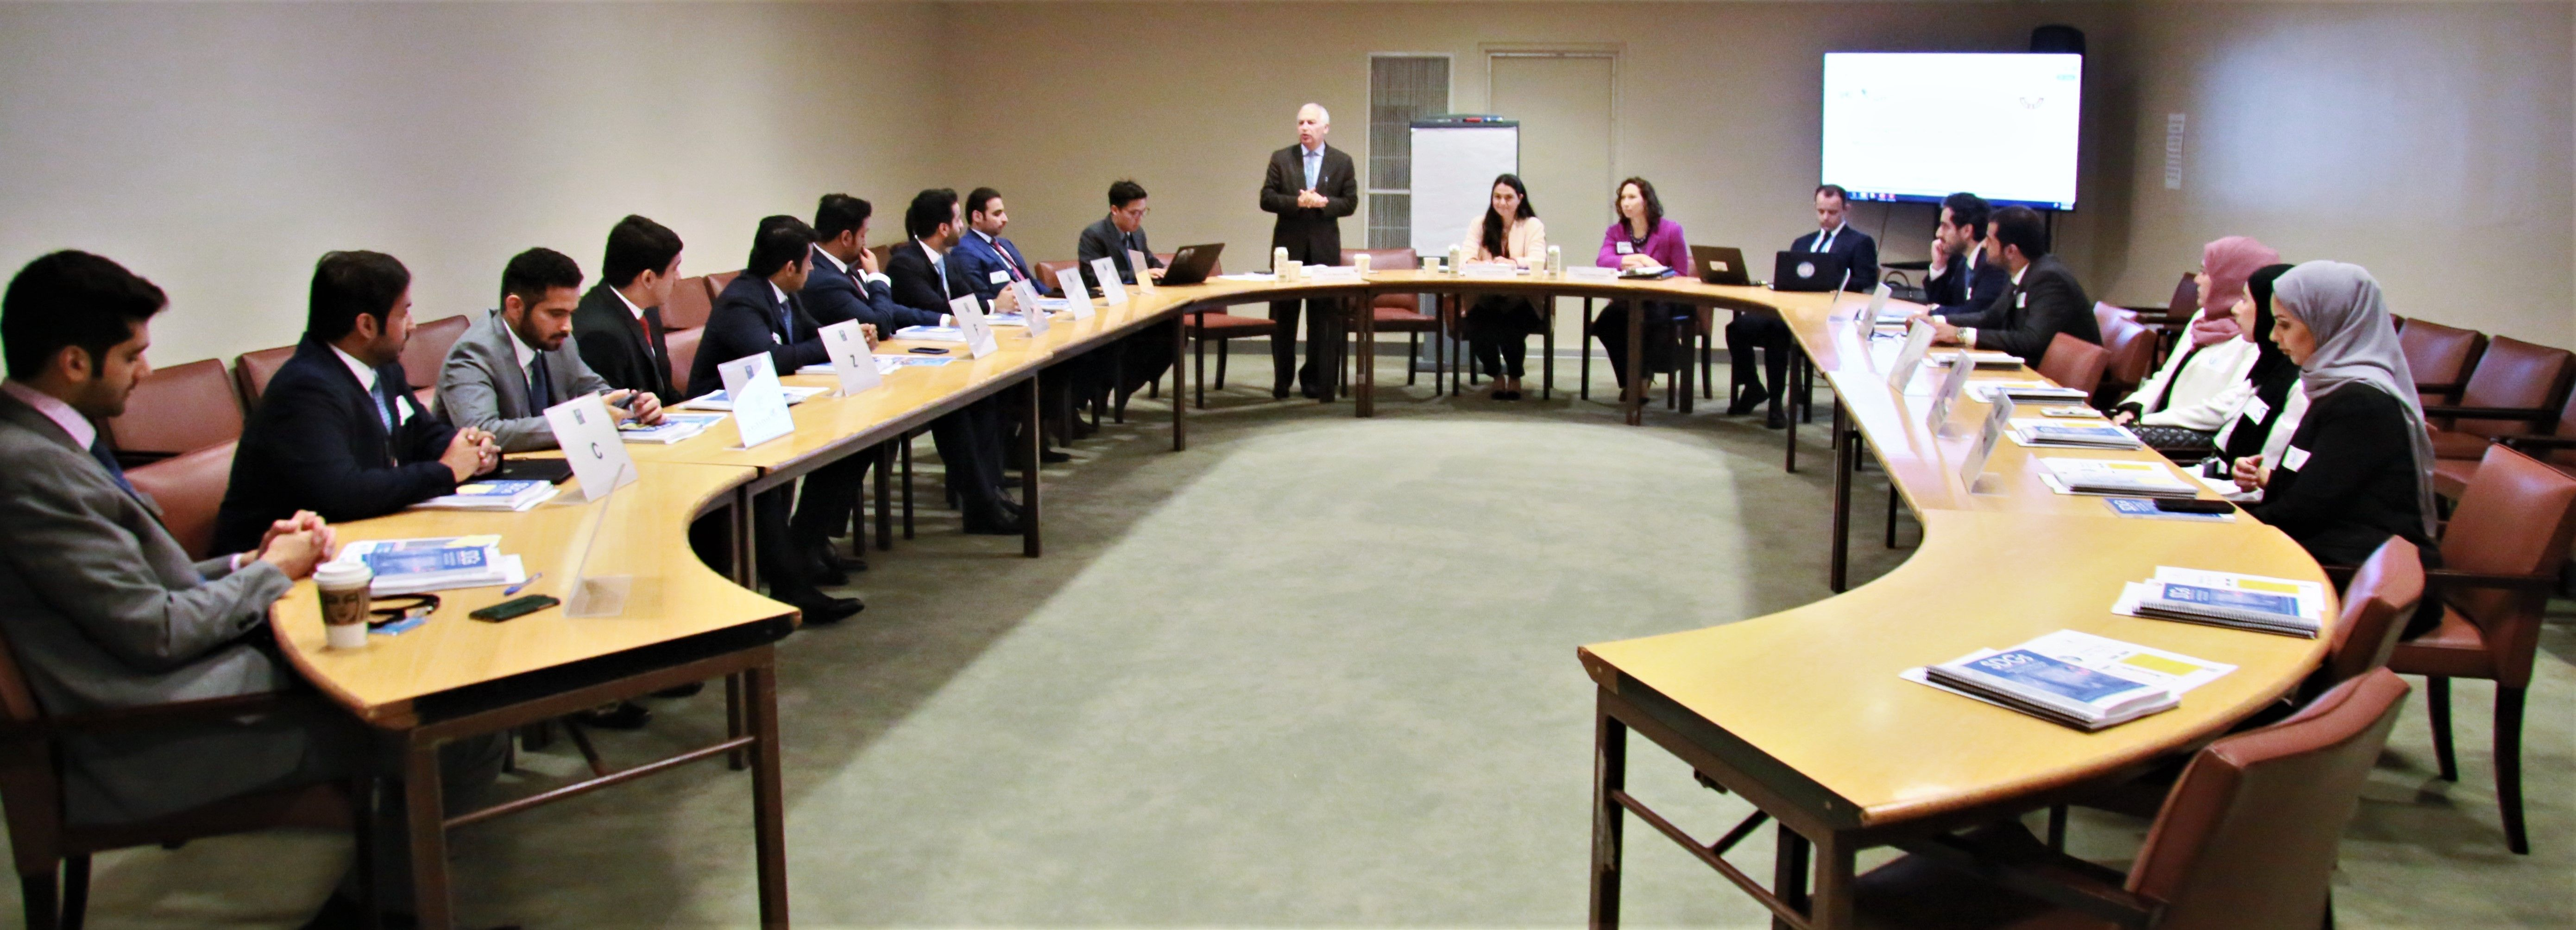 UNITAR HOSTS THE INDUCTION COURSE FOR QATAR DIPLOMATS